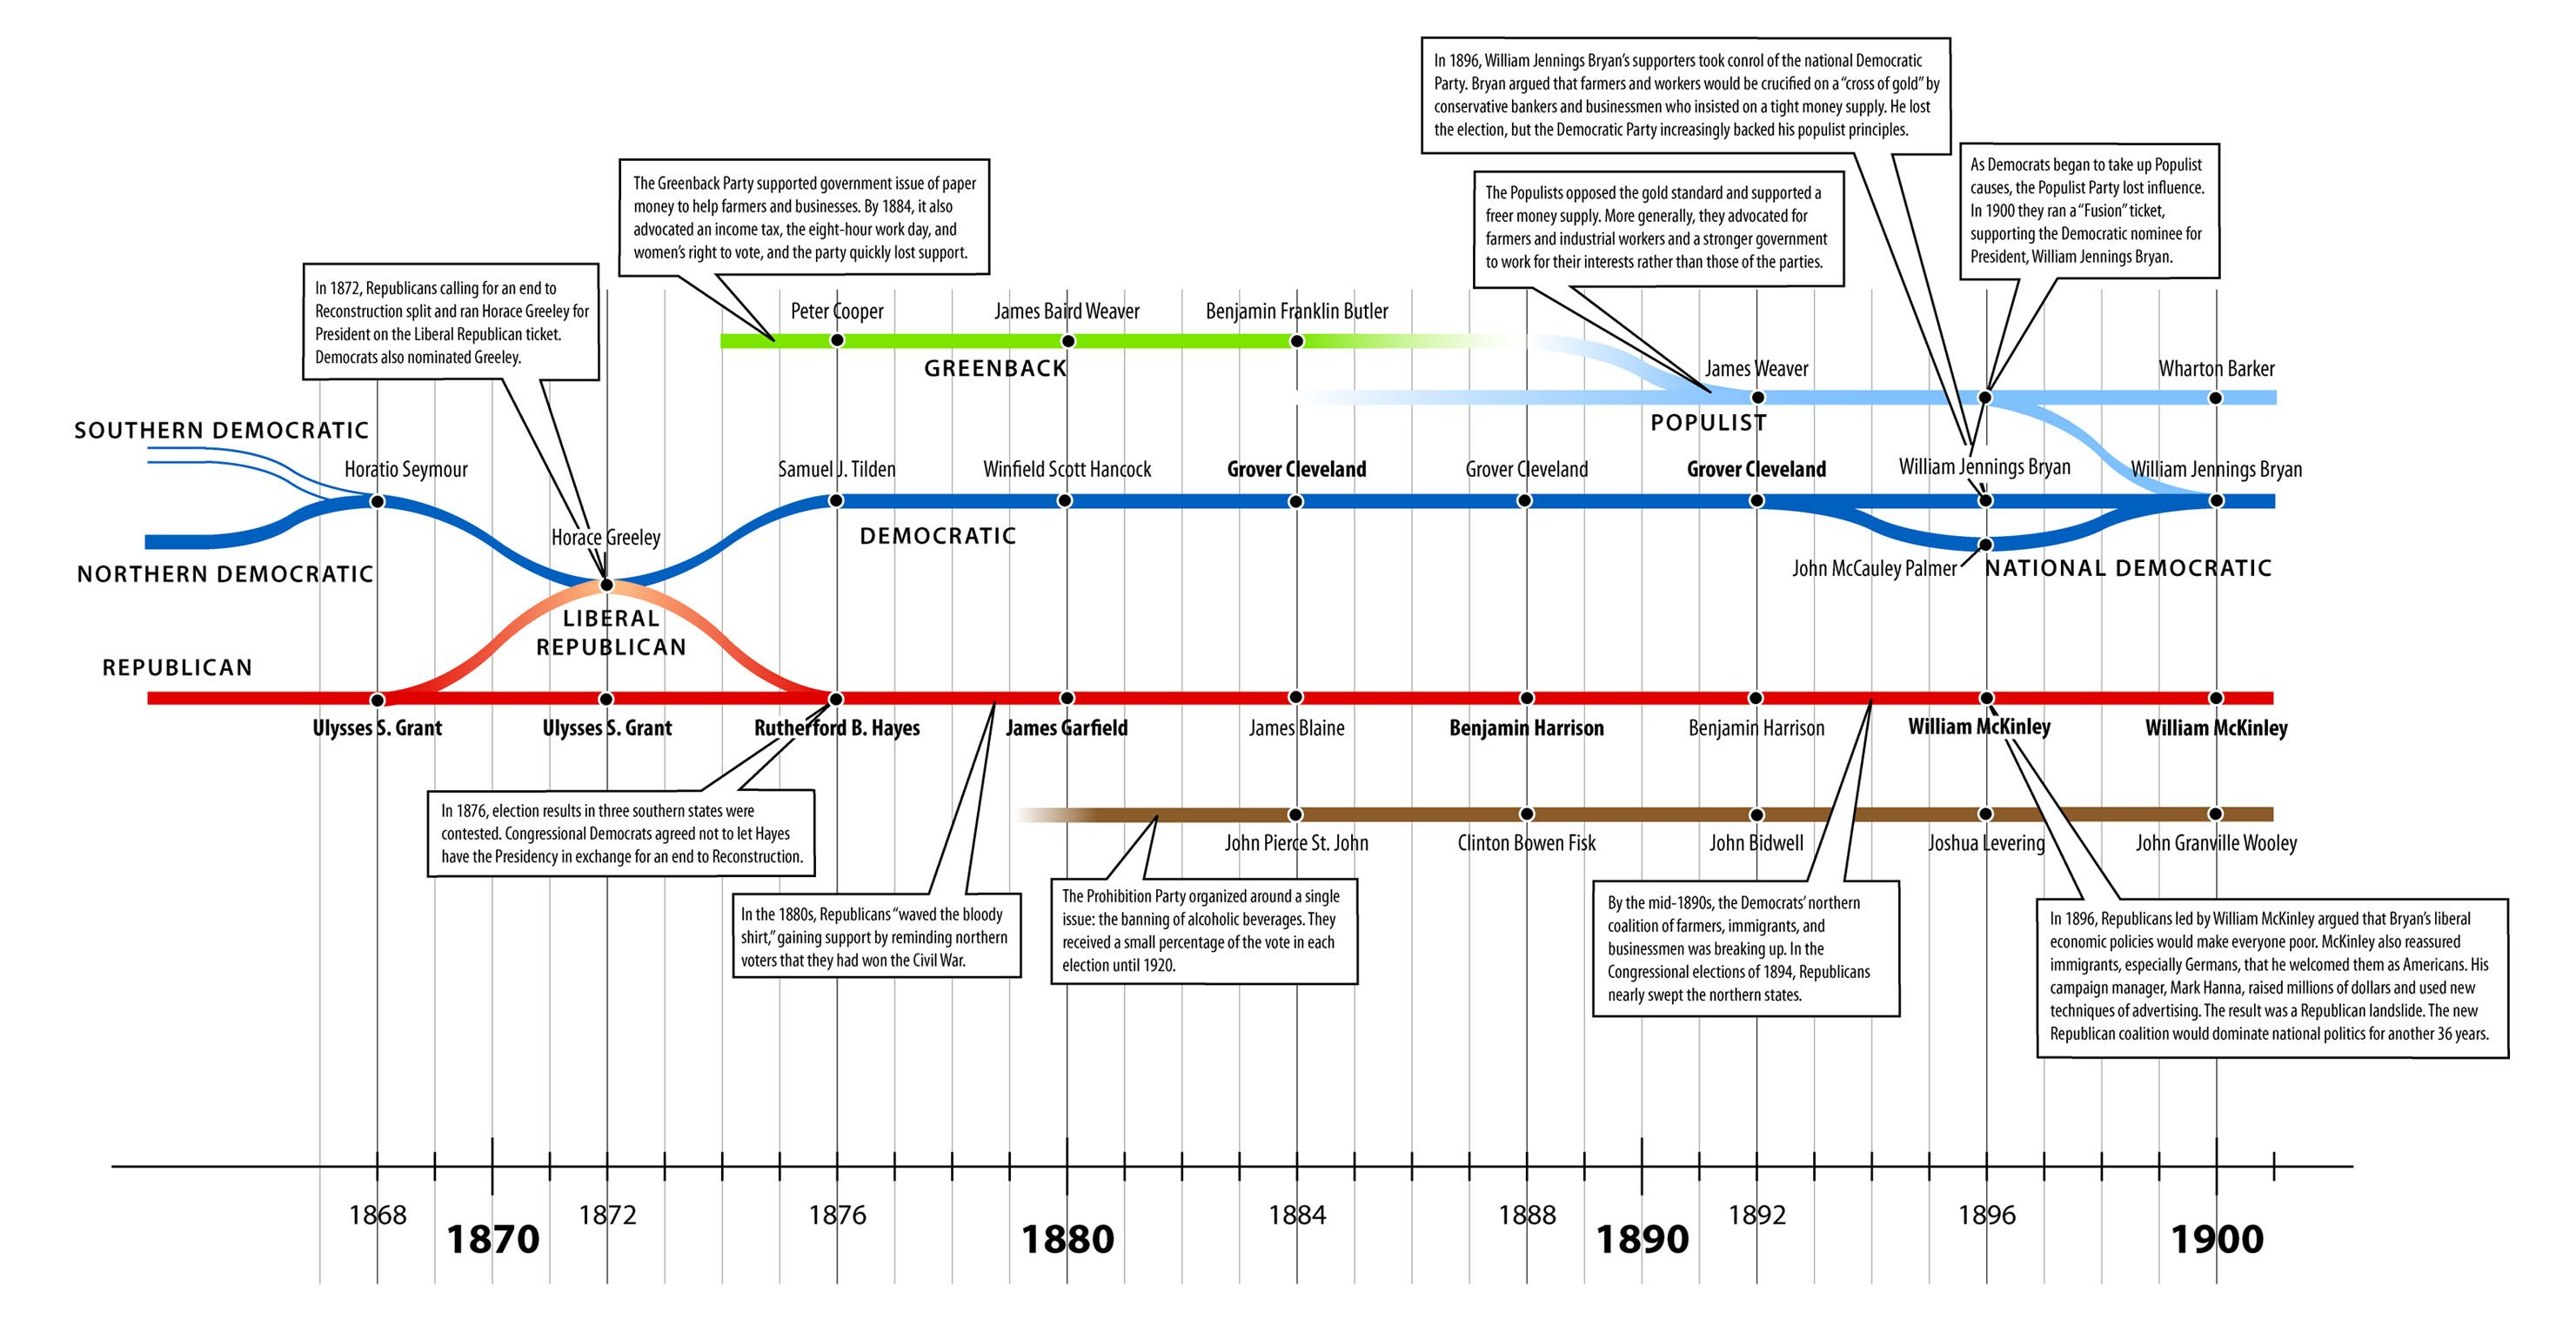 Us Political System At The End Of The 19th Century